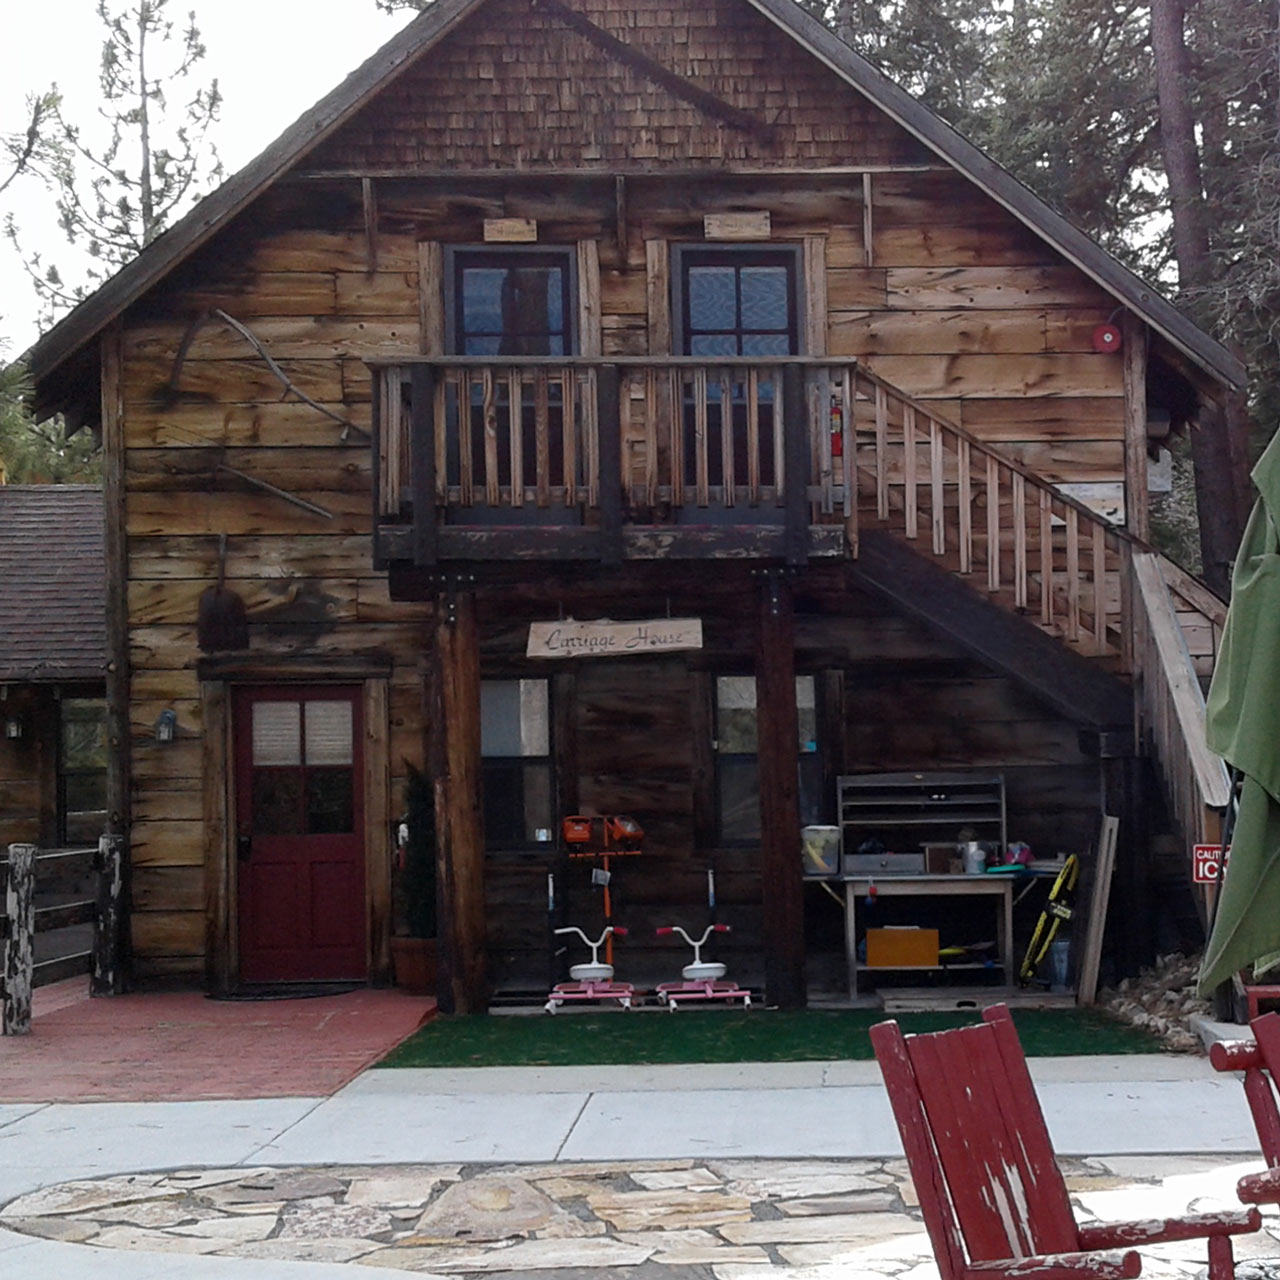 Carriage house with kids toys and other courtyard items